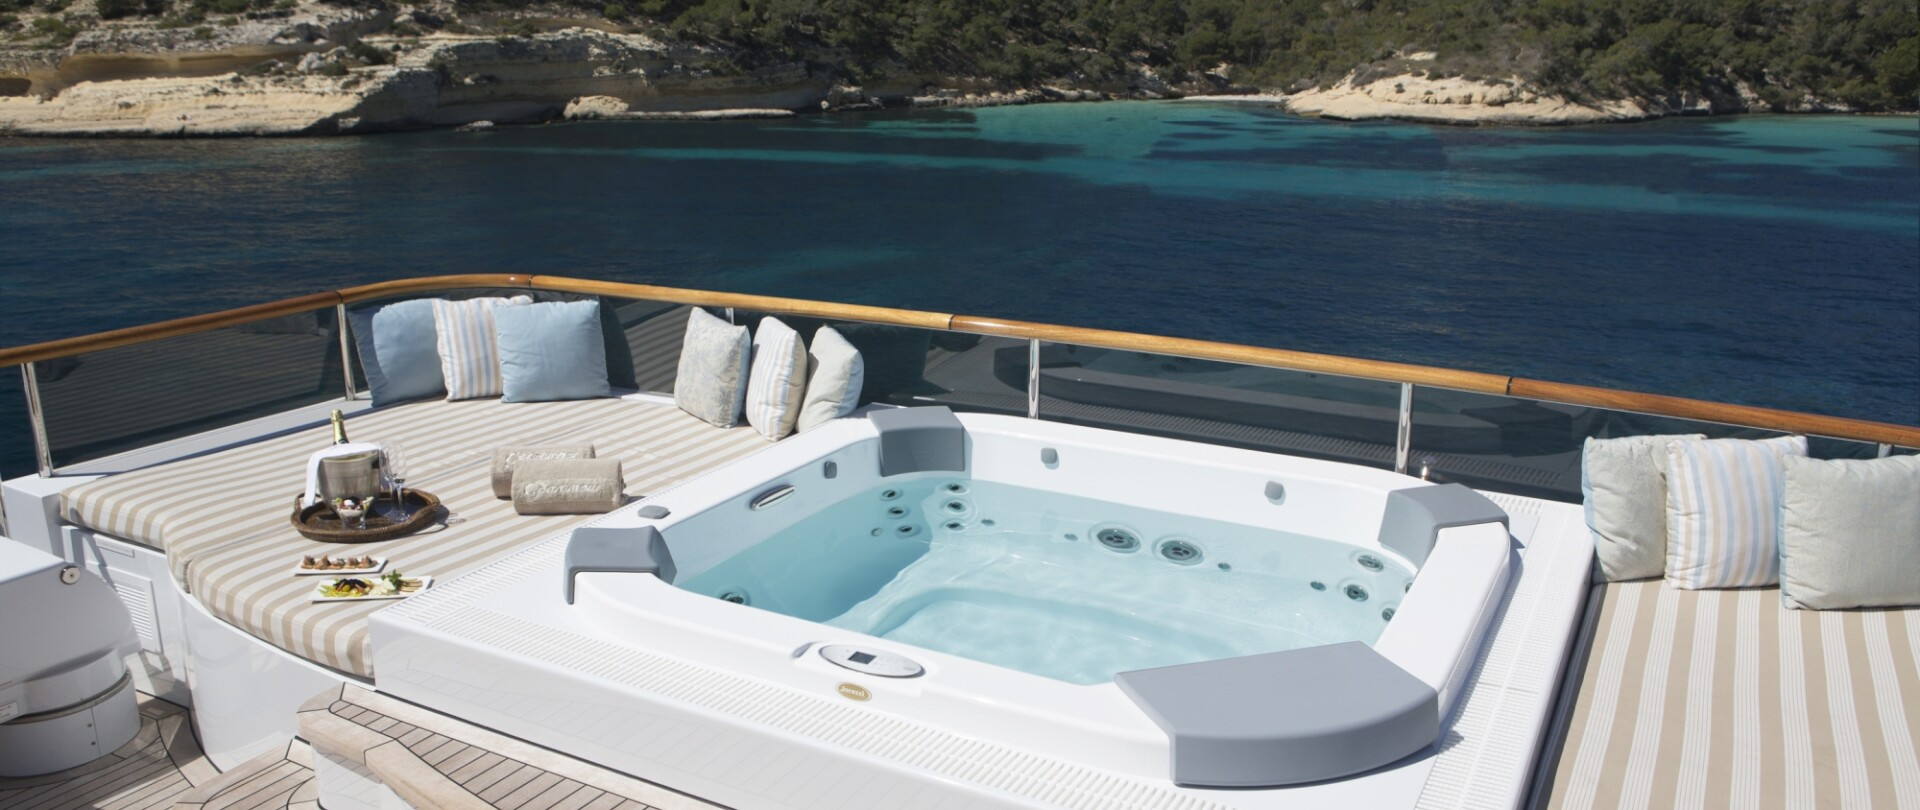 PARAMOUR Available for Event Charters photo 3